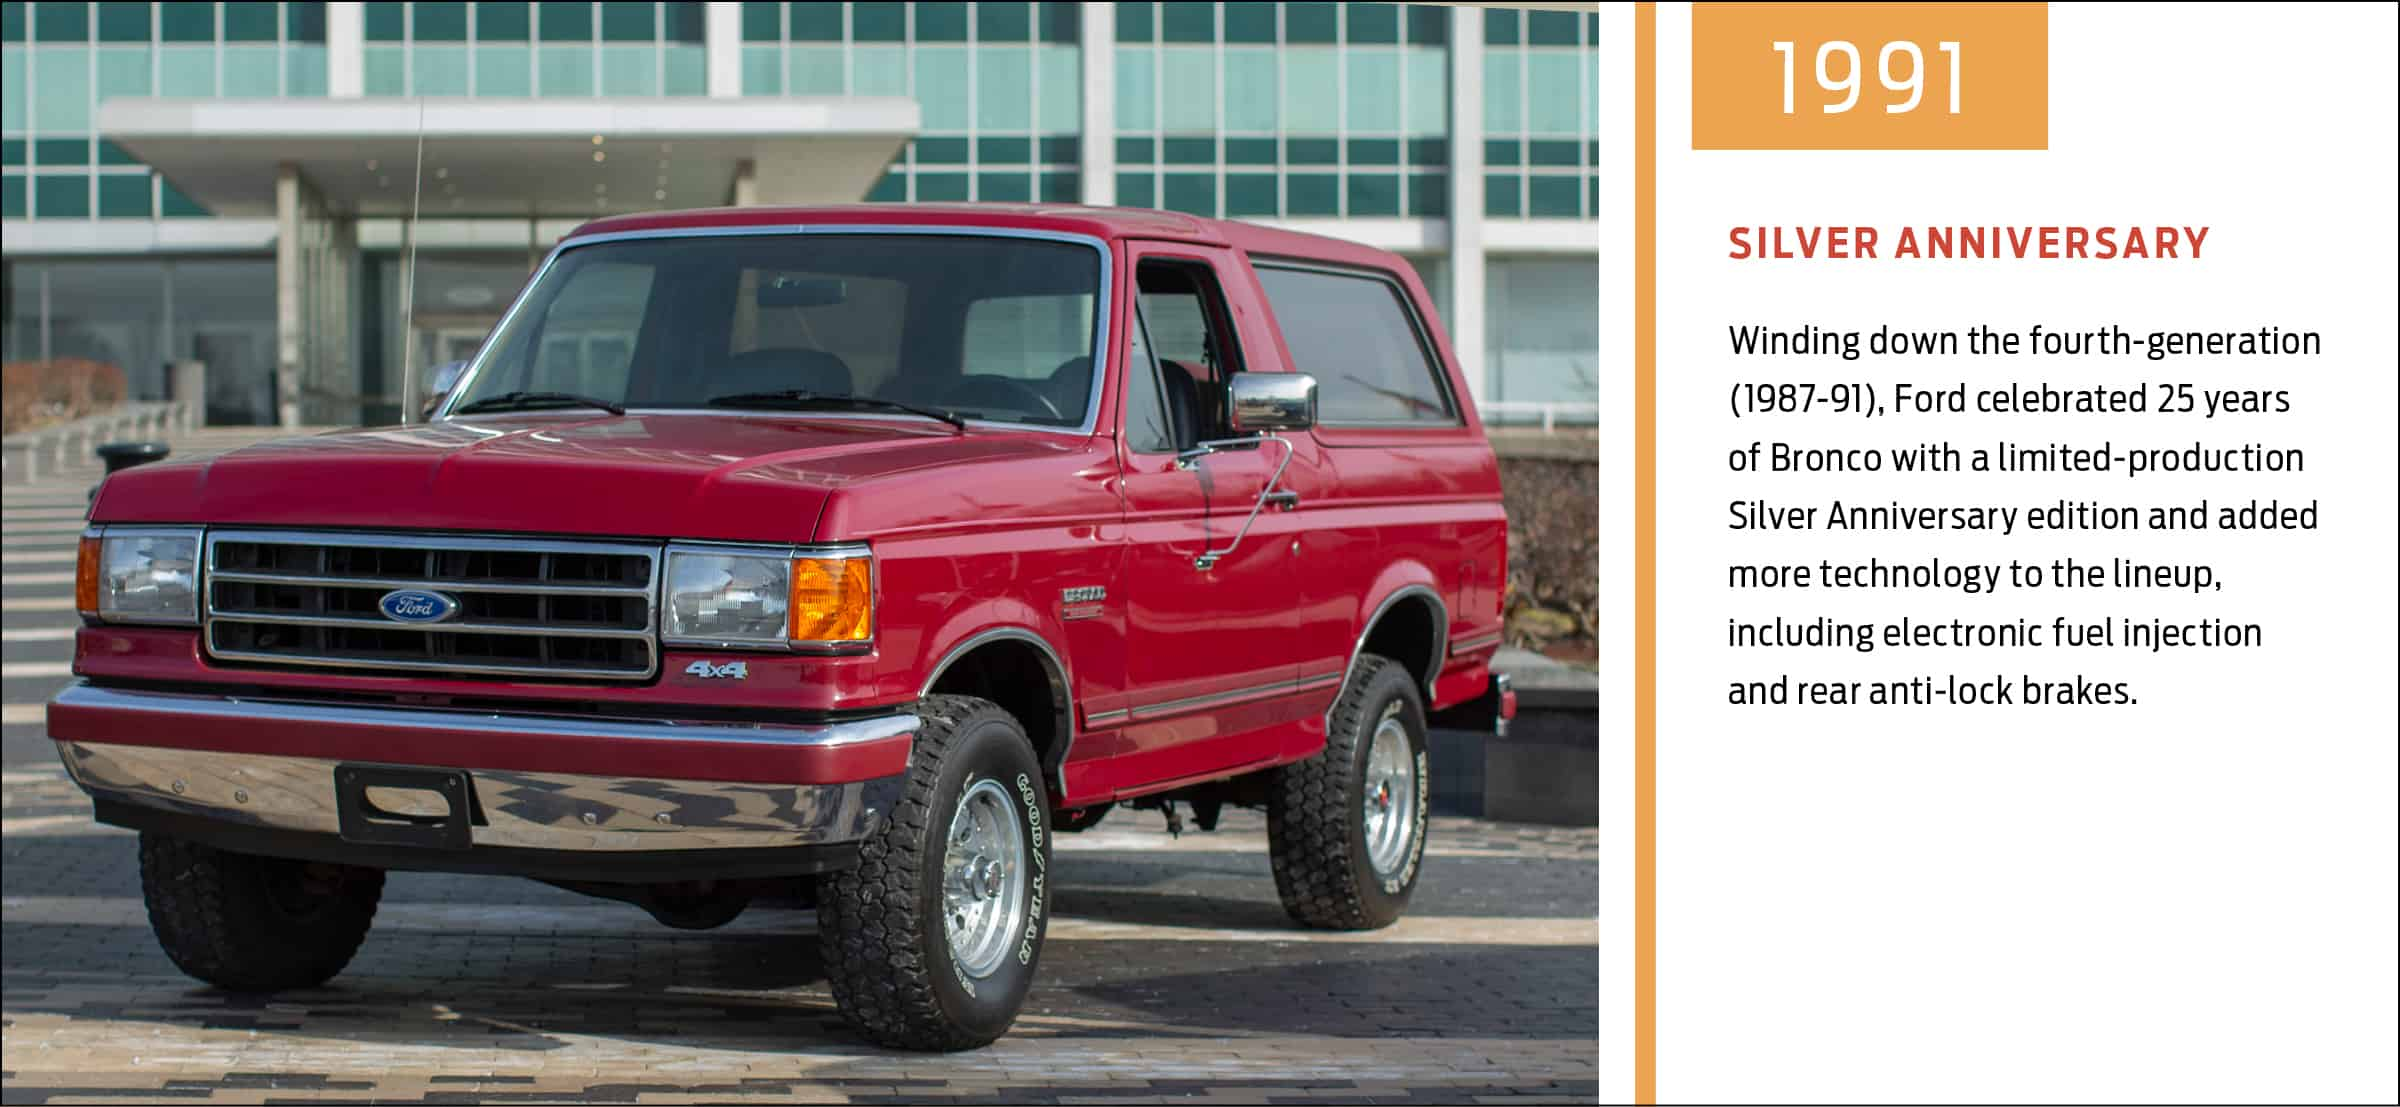 Bronco S Long History Displayed In Ford Infographic